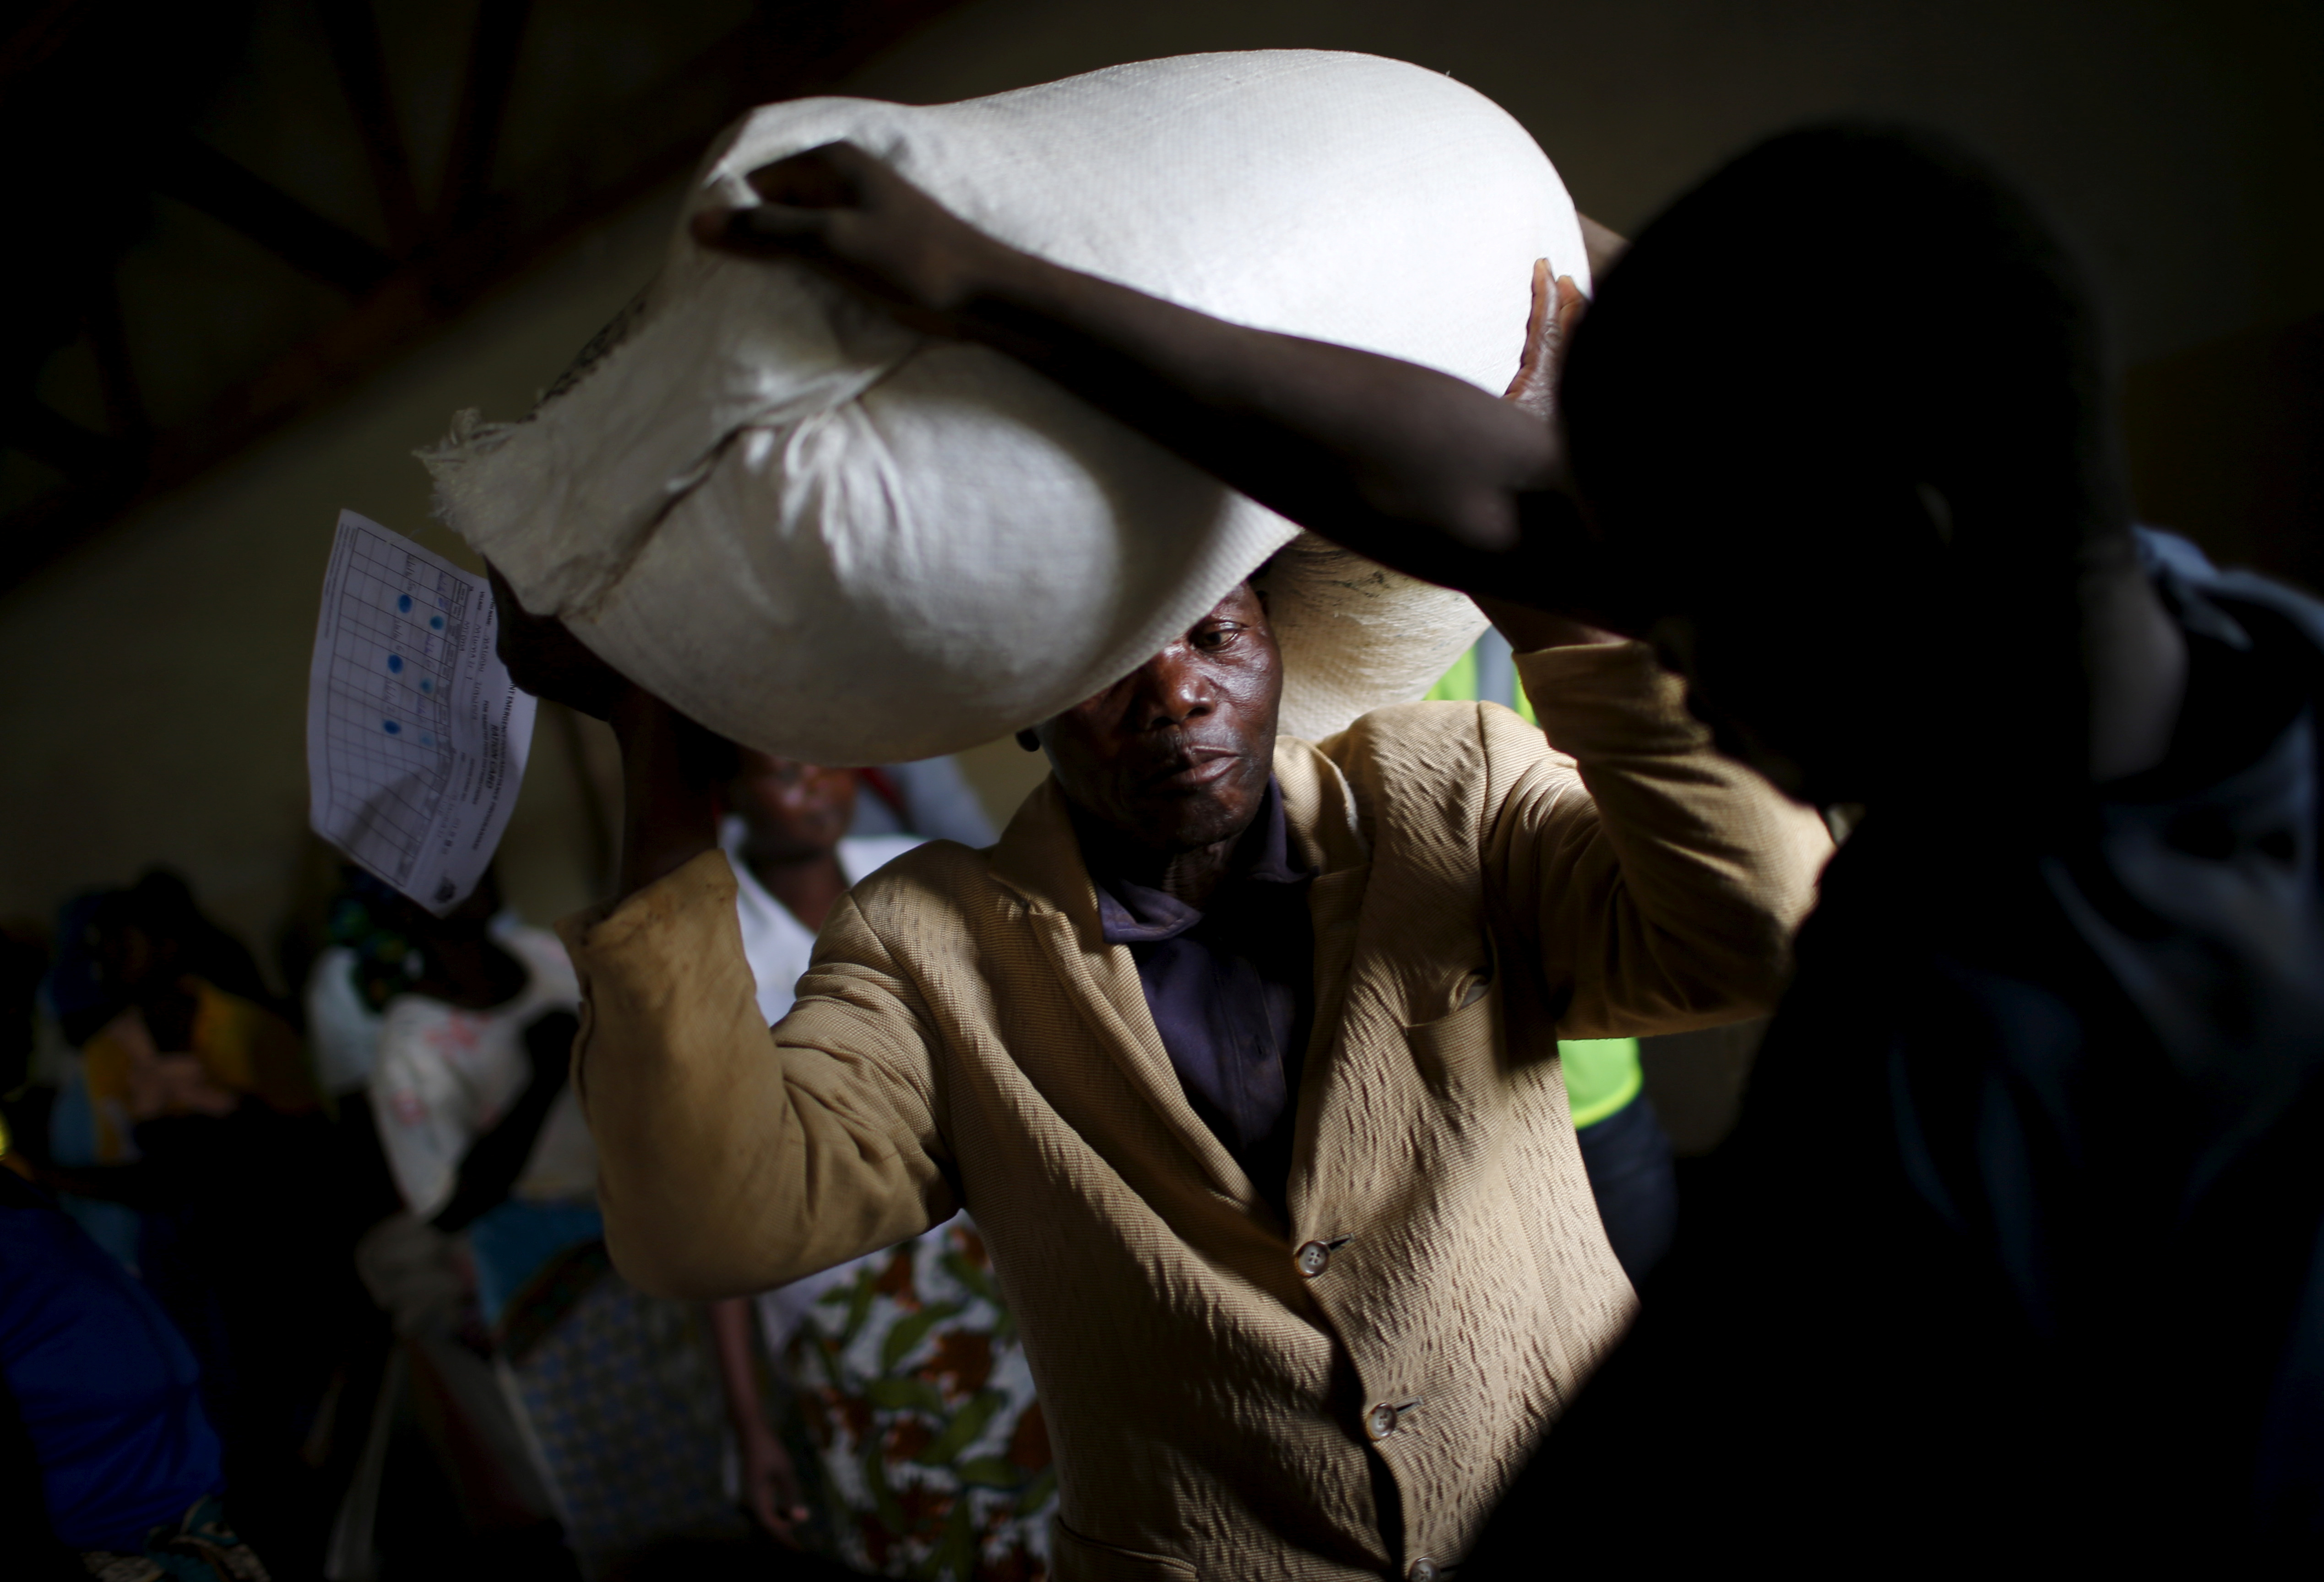 A man carries food aid distributed by the United Nations World Food Progamme (WFP) in Mzumazi village near Malawi's capital Lilongwe, Feb. 3, 2016.